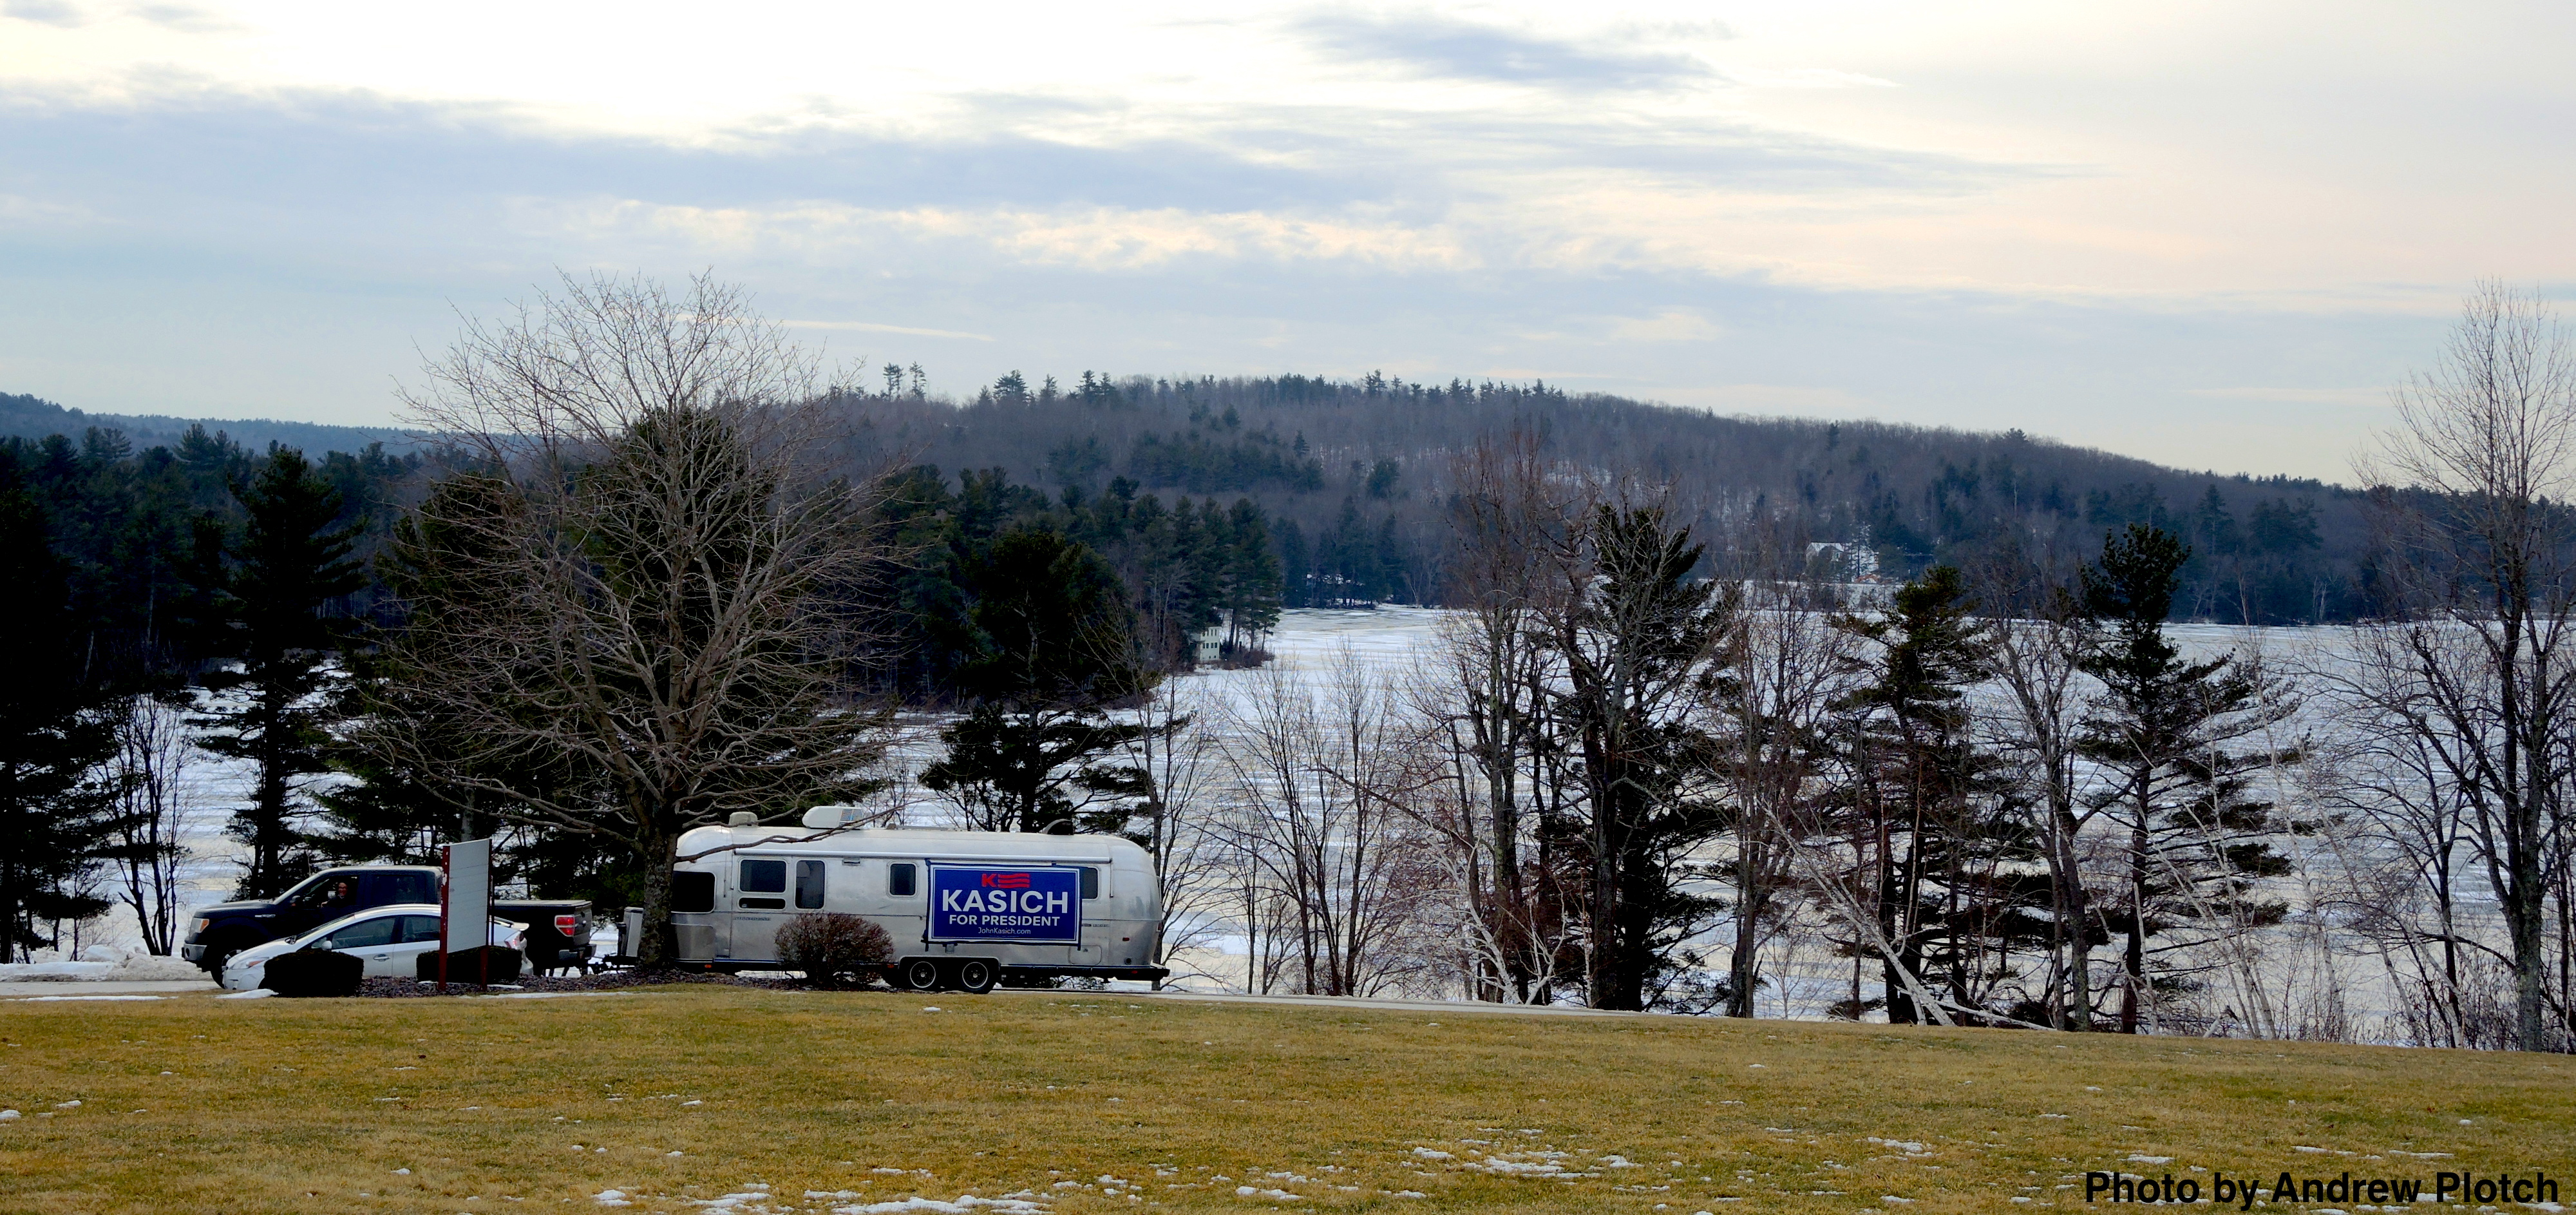 A Kasich supporter's decked out Airstream before a town hall event at Franklin Pierce University. Photo by Andrew Plotch.